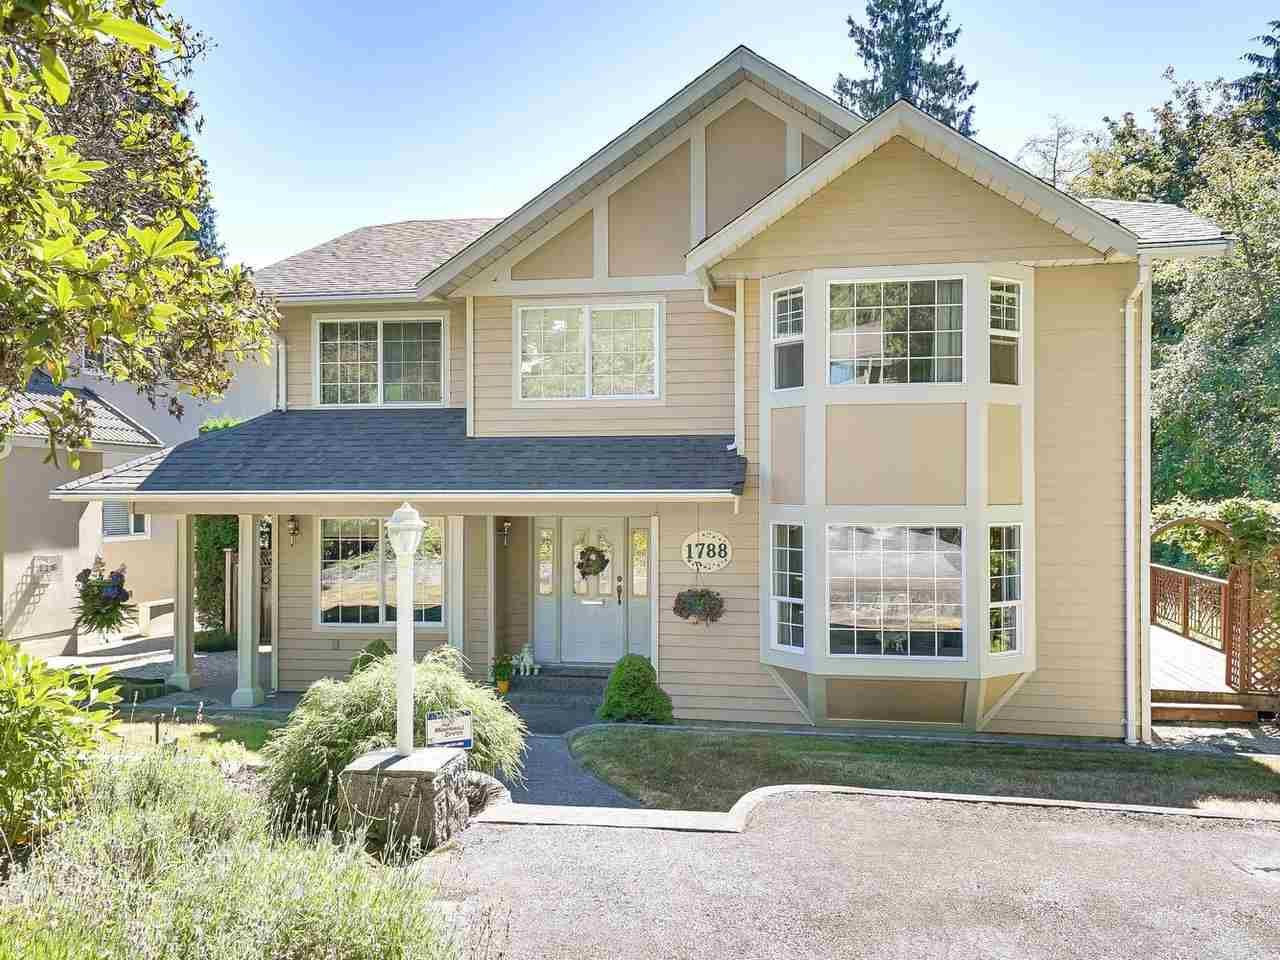 Photo 1: Photos: 1788 GORDON Avenue in West Vancouver: Ambleside House for sale : MLS®# R2207715